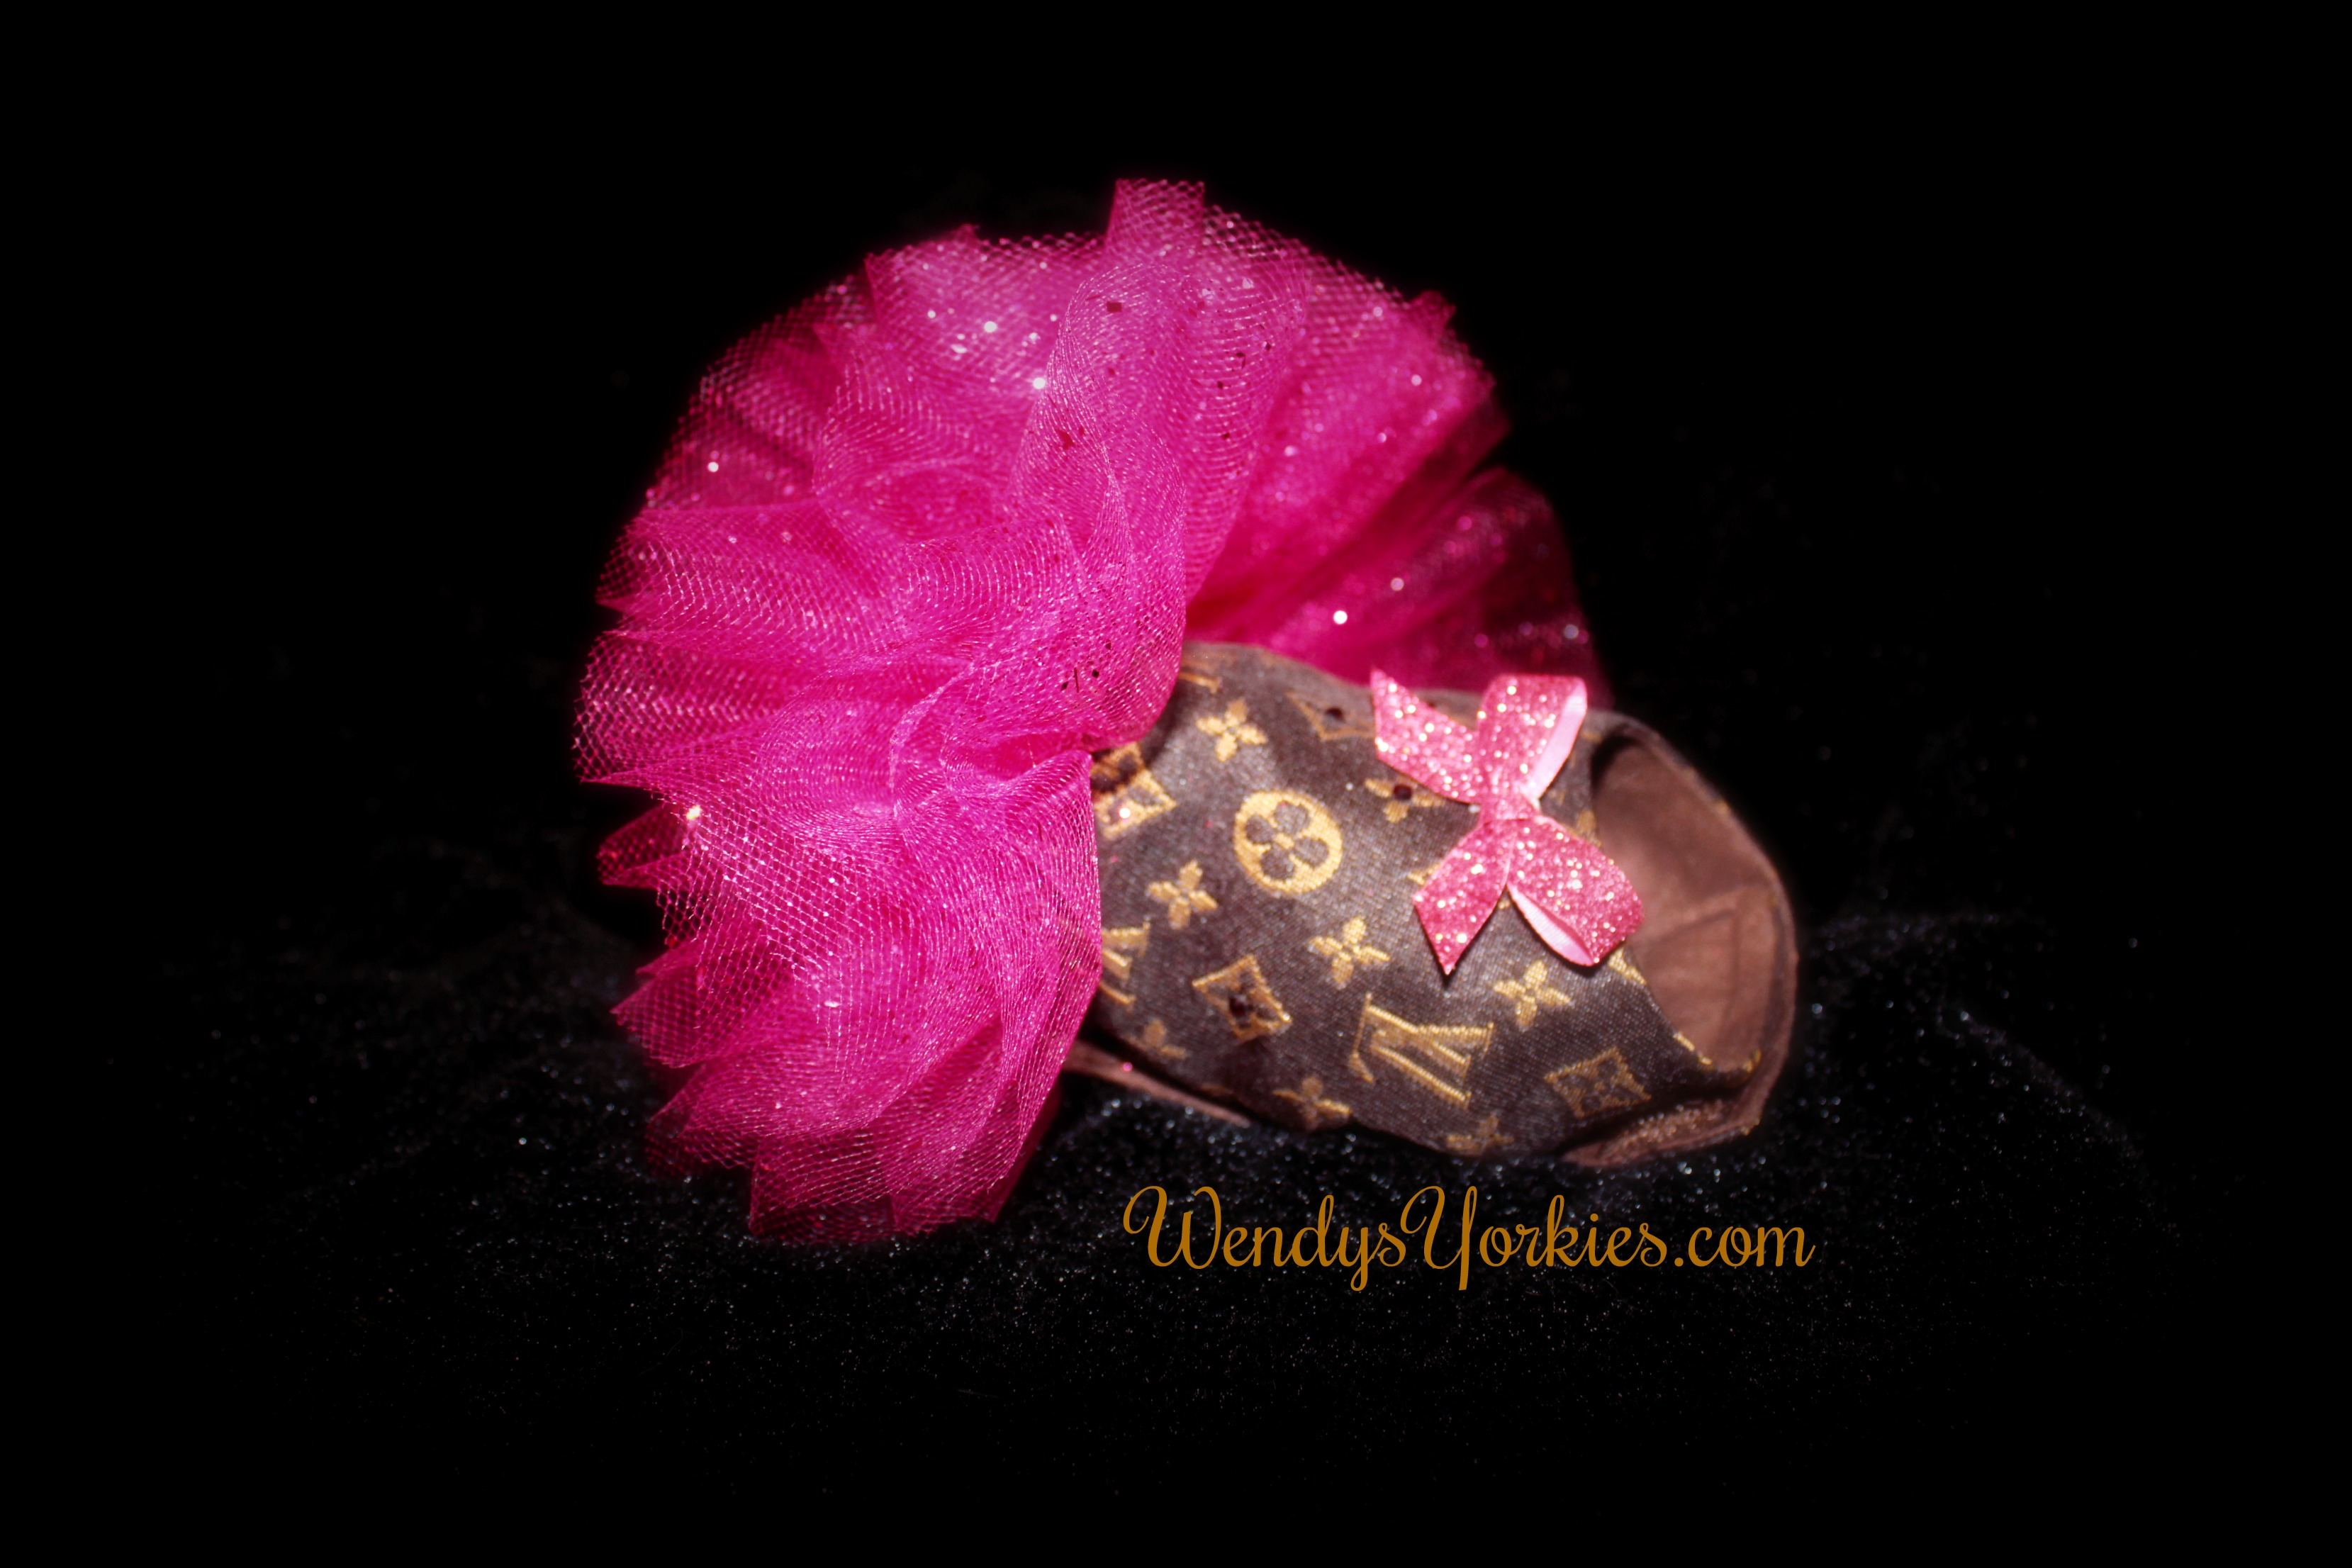 Yorkie Designer dog dress, Fuchsia Tutu for dos puppies, WendysYorkies.com